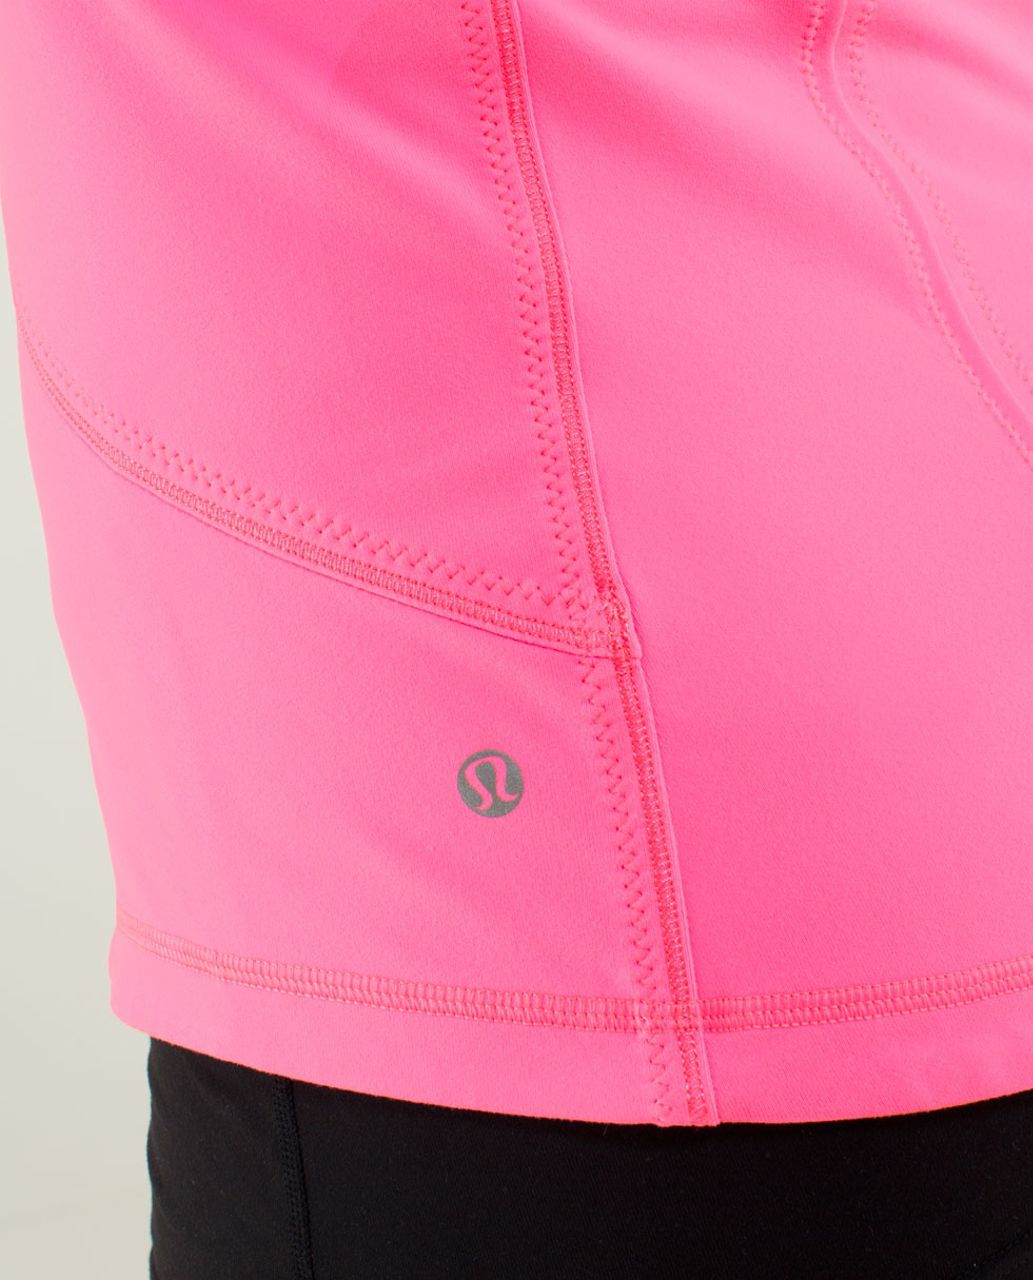 Lululemon Forme Jacket *Cuffins - Zing Pink Light